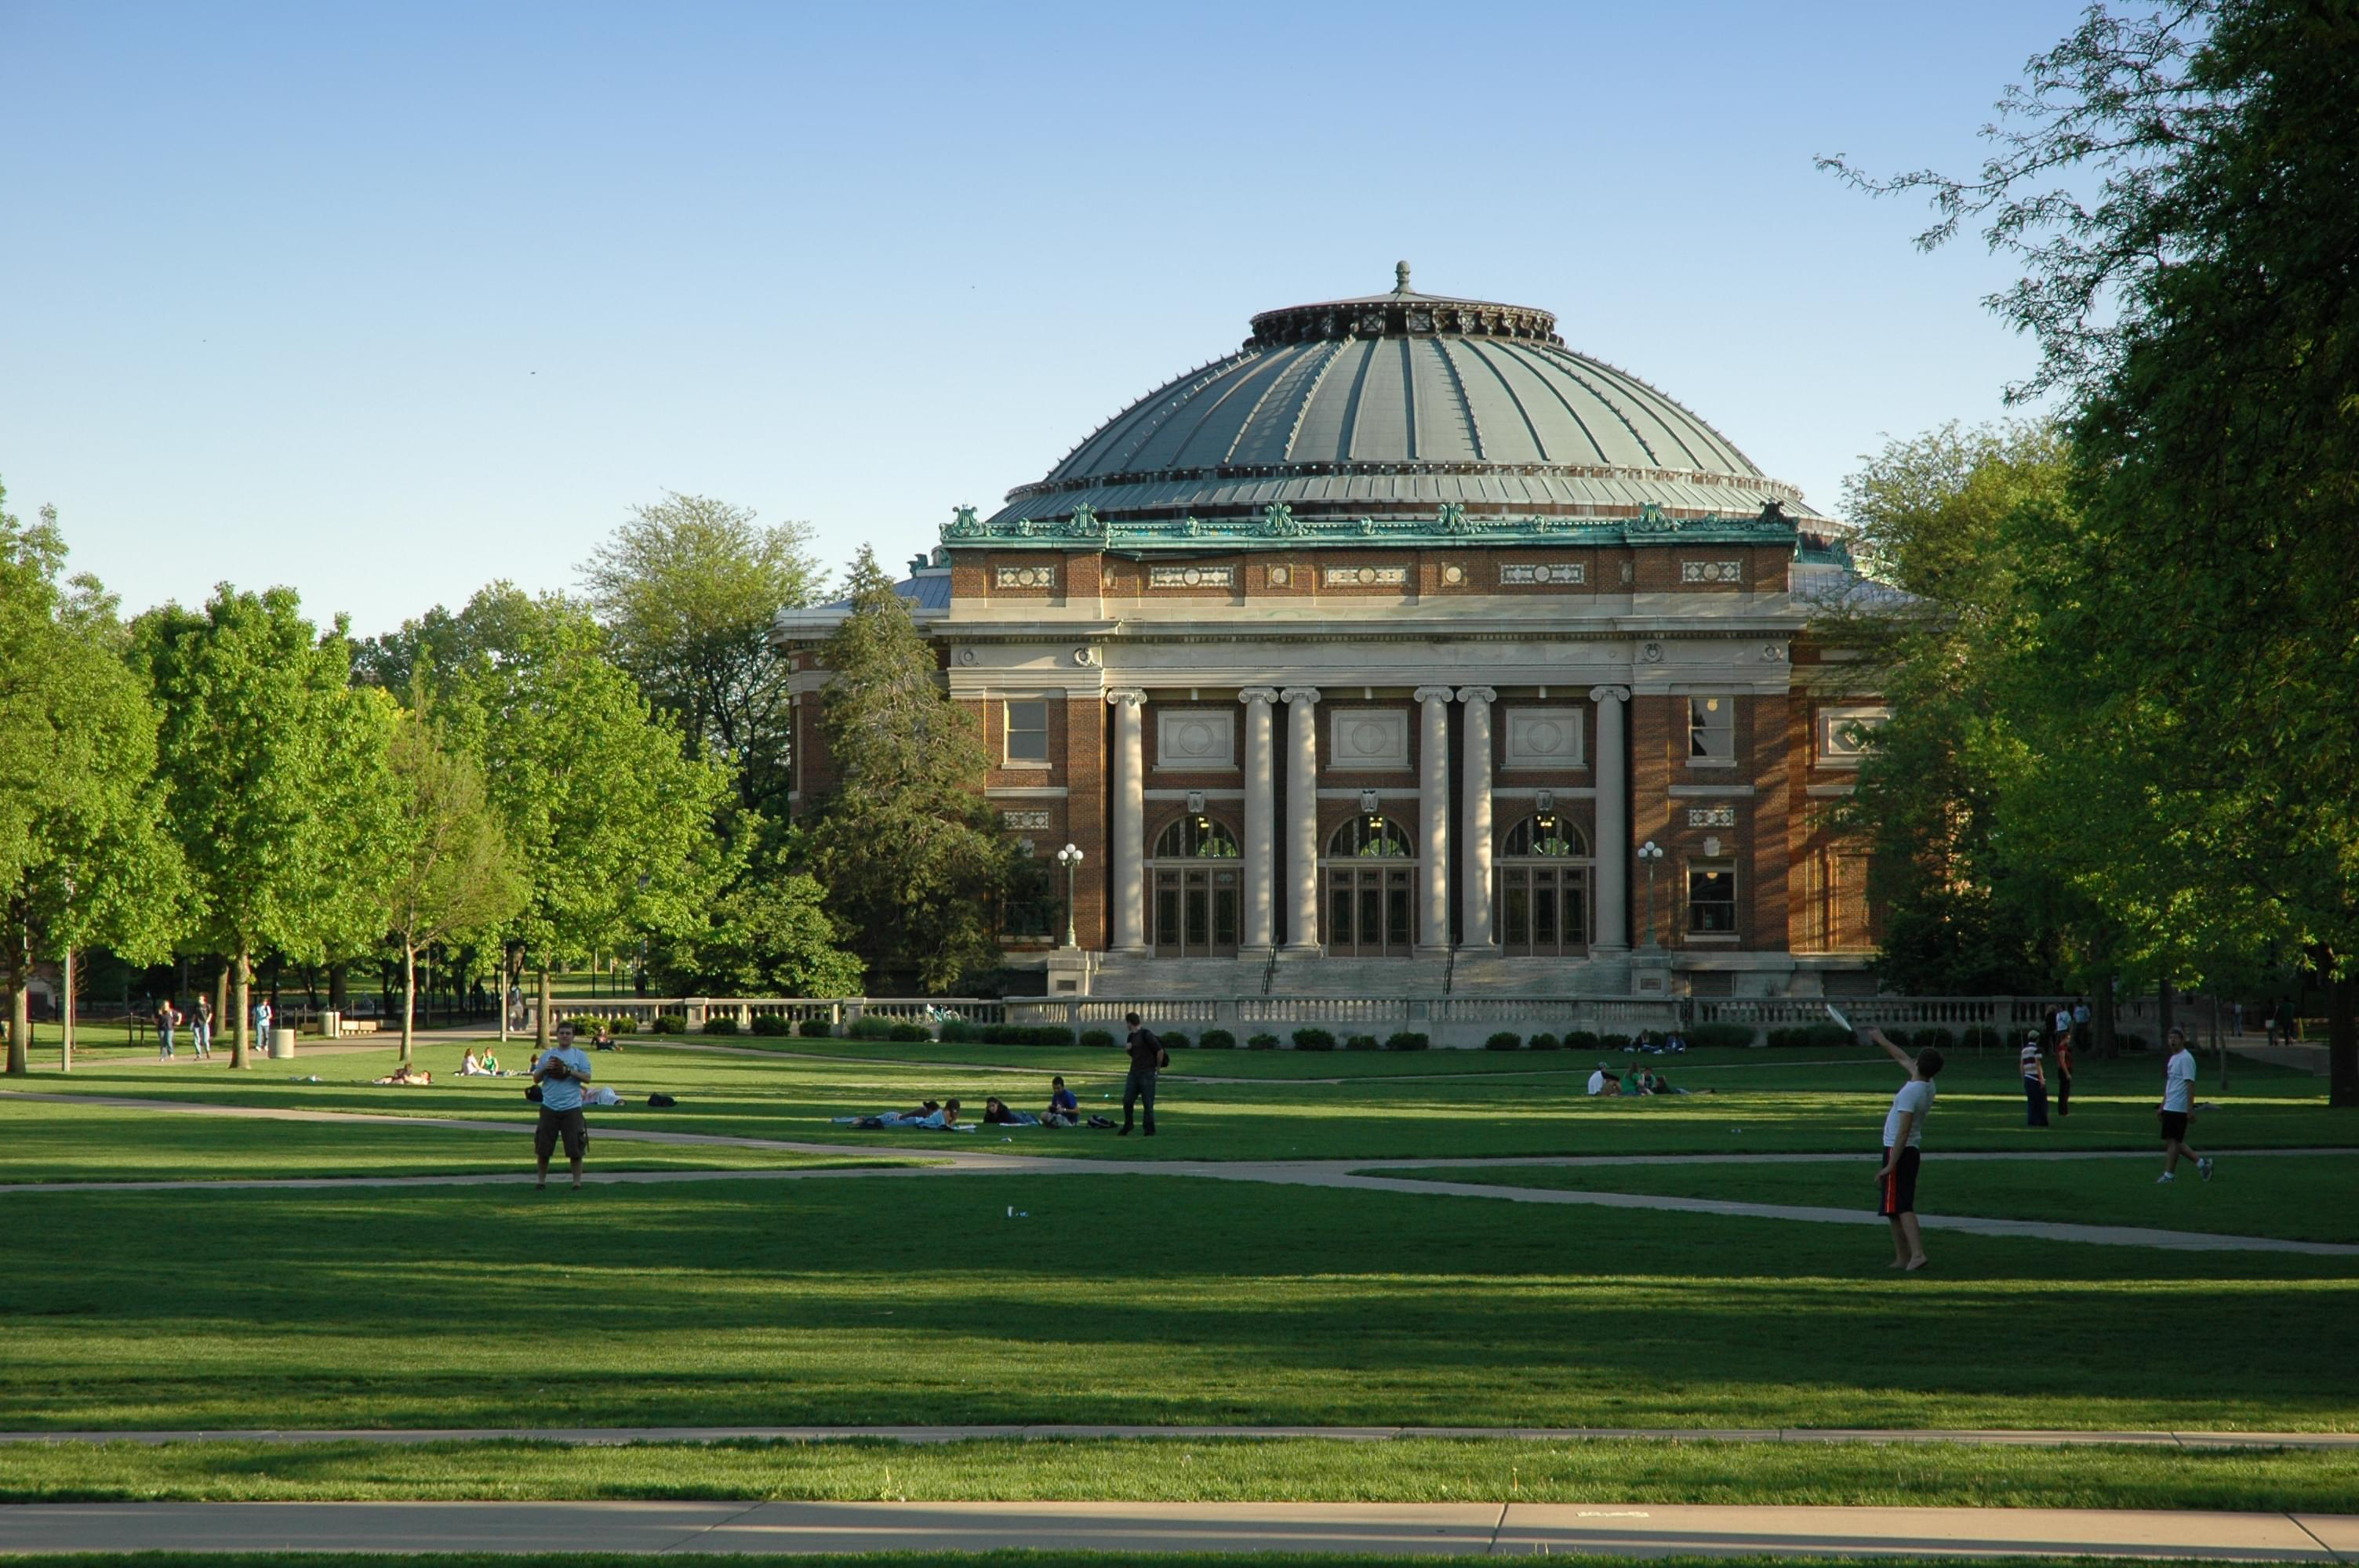 essays for university of illinois Regarding essay two, the university of illinois wants a vibrant, diverse, ever growing, and changing campus community we would like to know something else about you that isn't otherwise covered in the application.